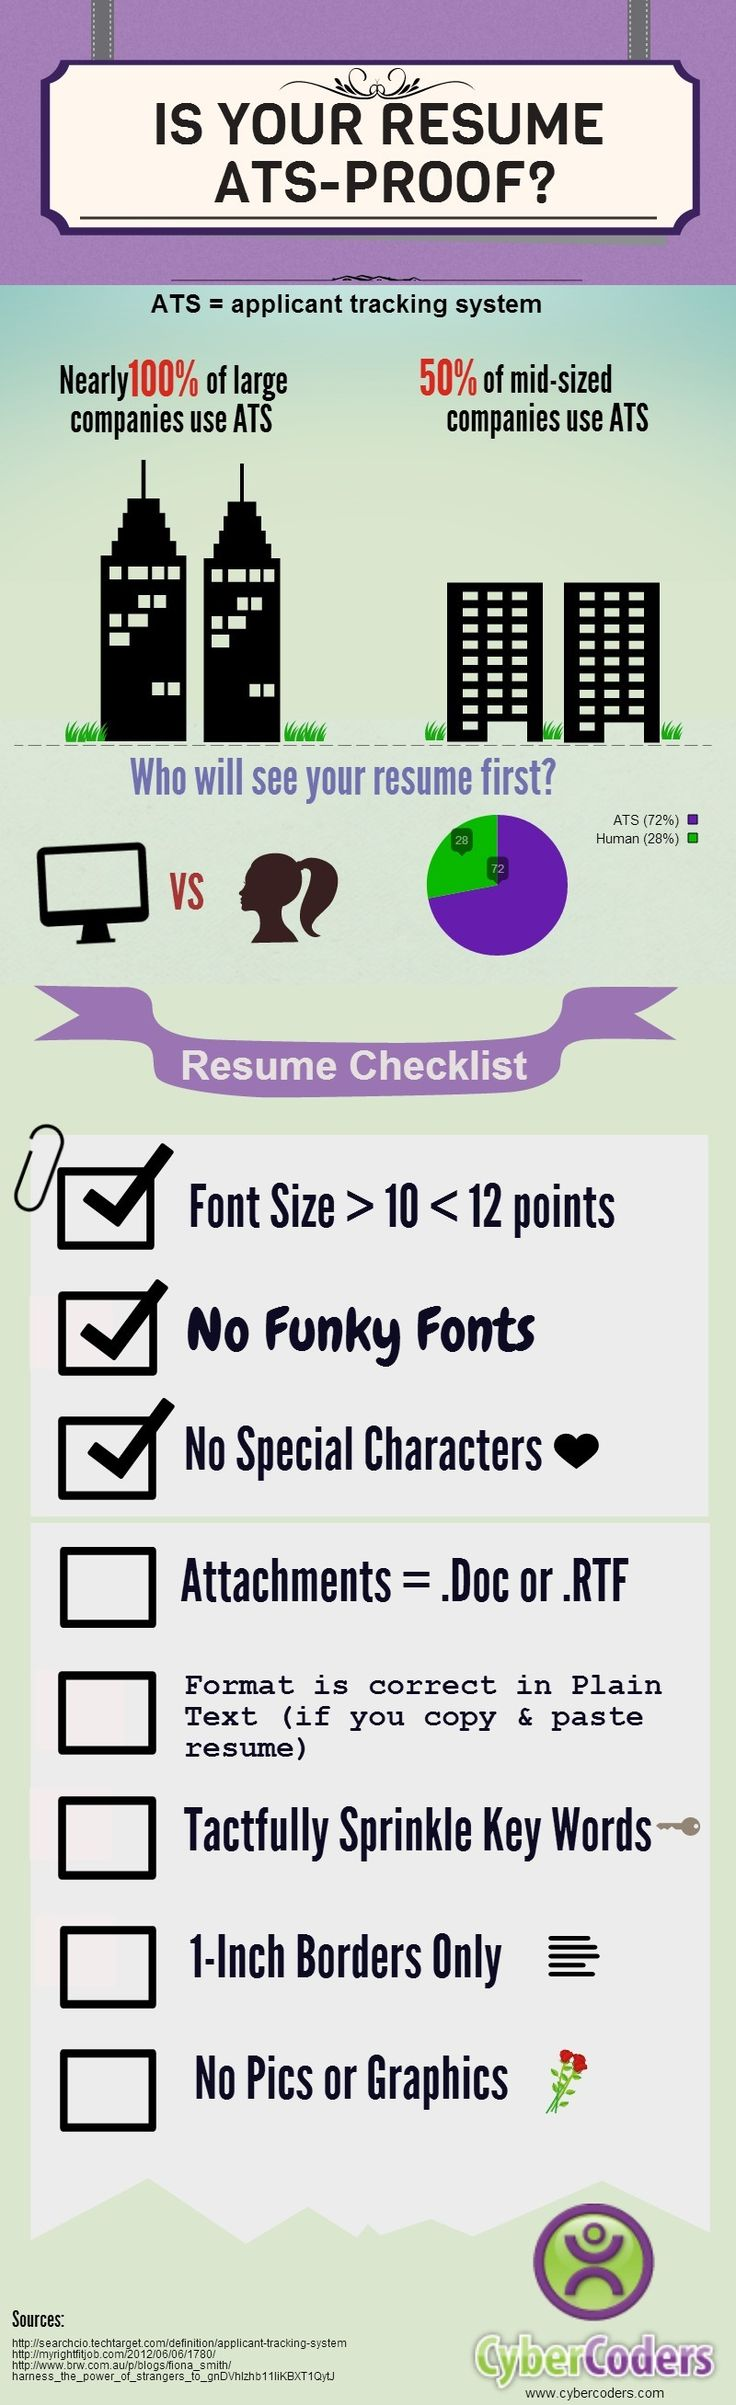 best images about resume tips and tricks resume cybercoders infographic is your resume ats proof cybercoders insights